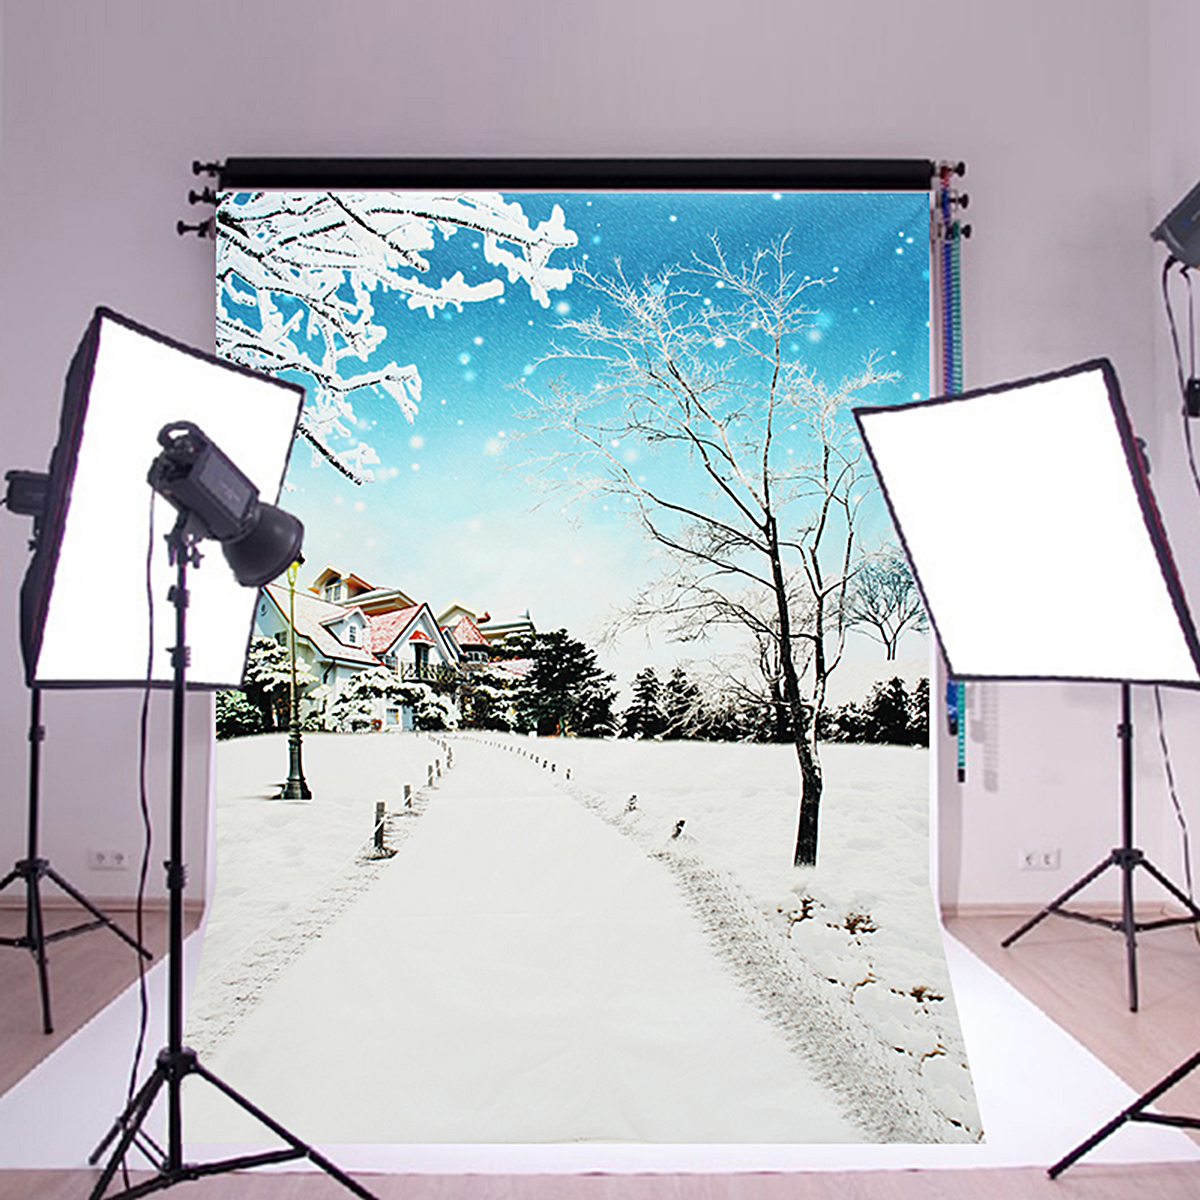 neufu toile de fond tissu neige mariage pour photographie studio photo. Black Bedroom Furniture Sets. Home Design Ideas